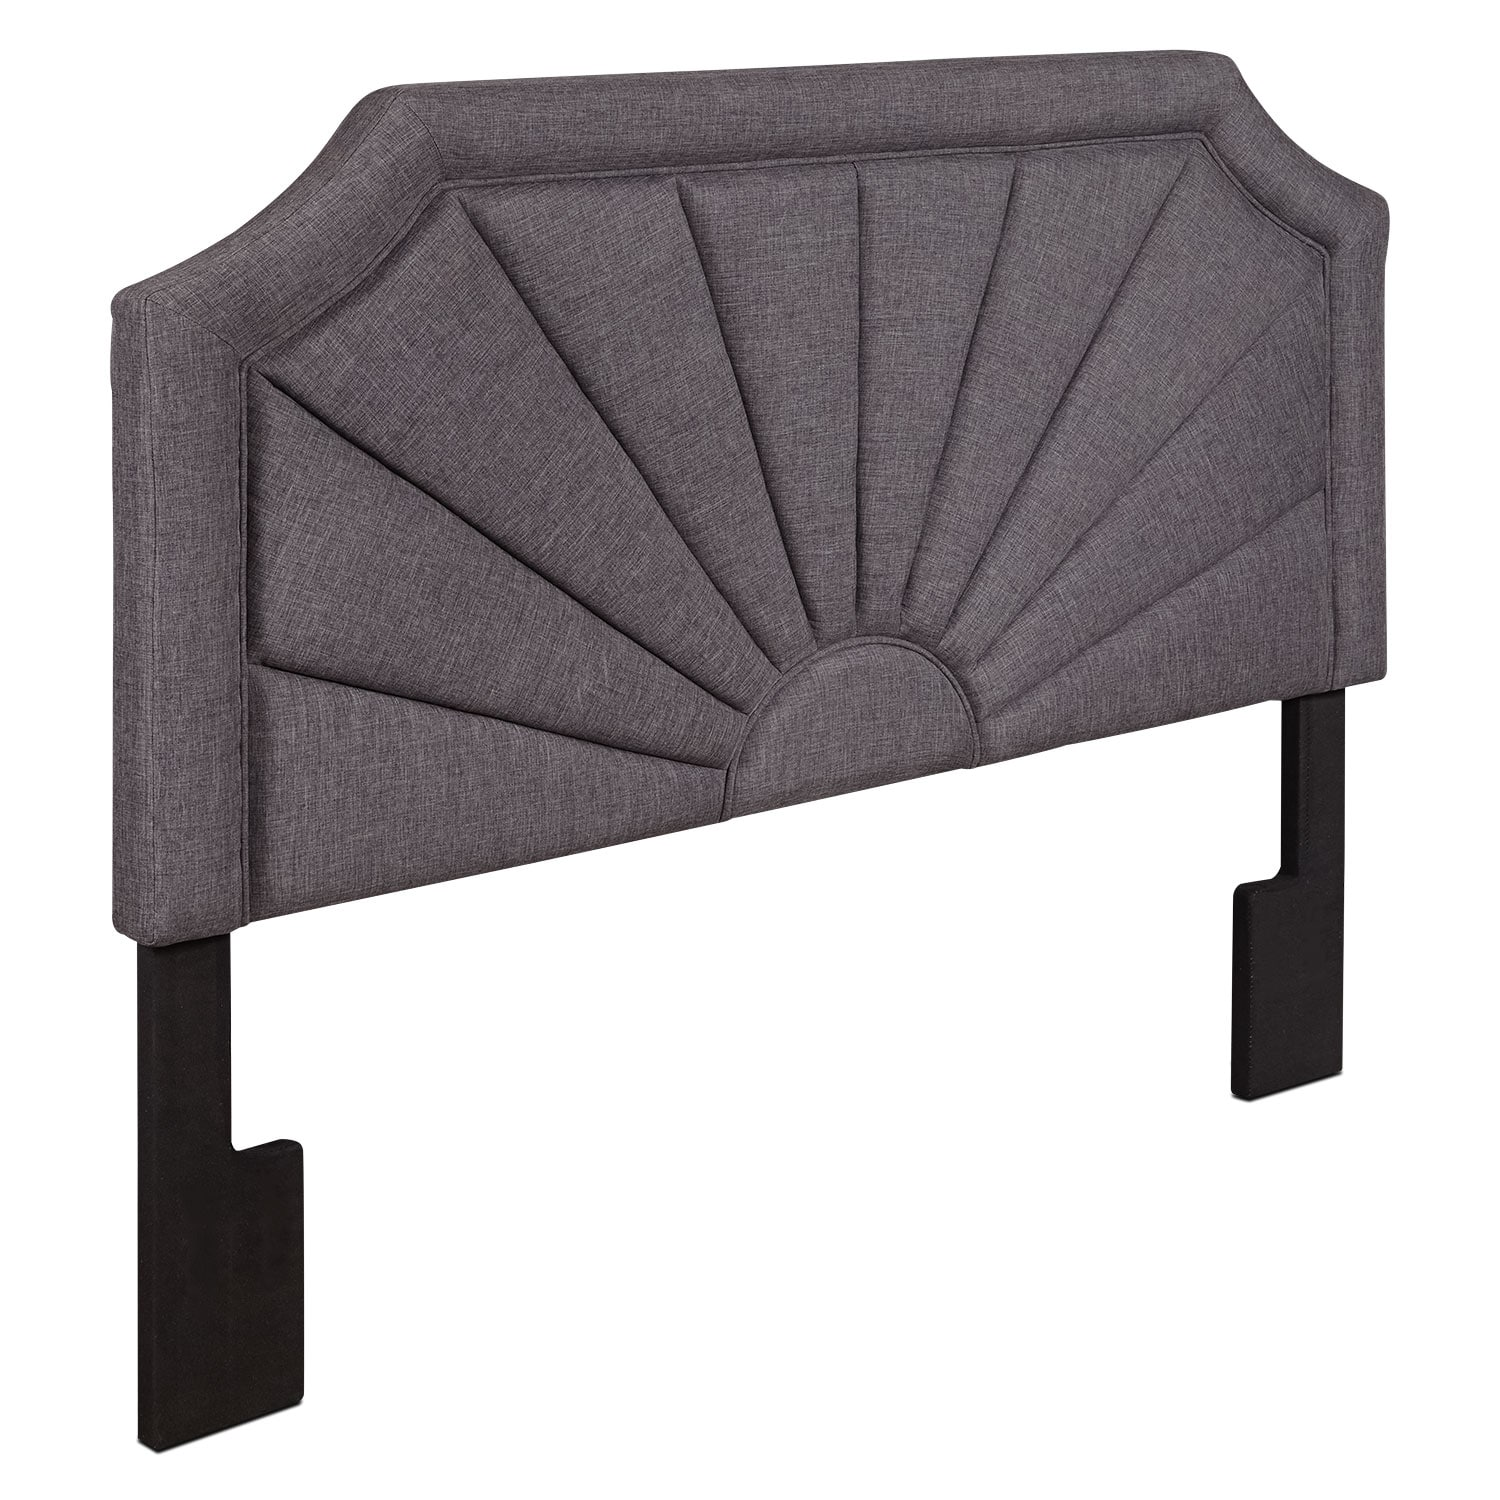 Bedroom Furniture - Tinley King Headboard - Gray